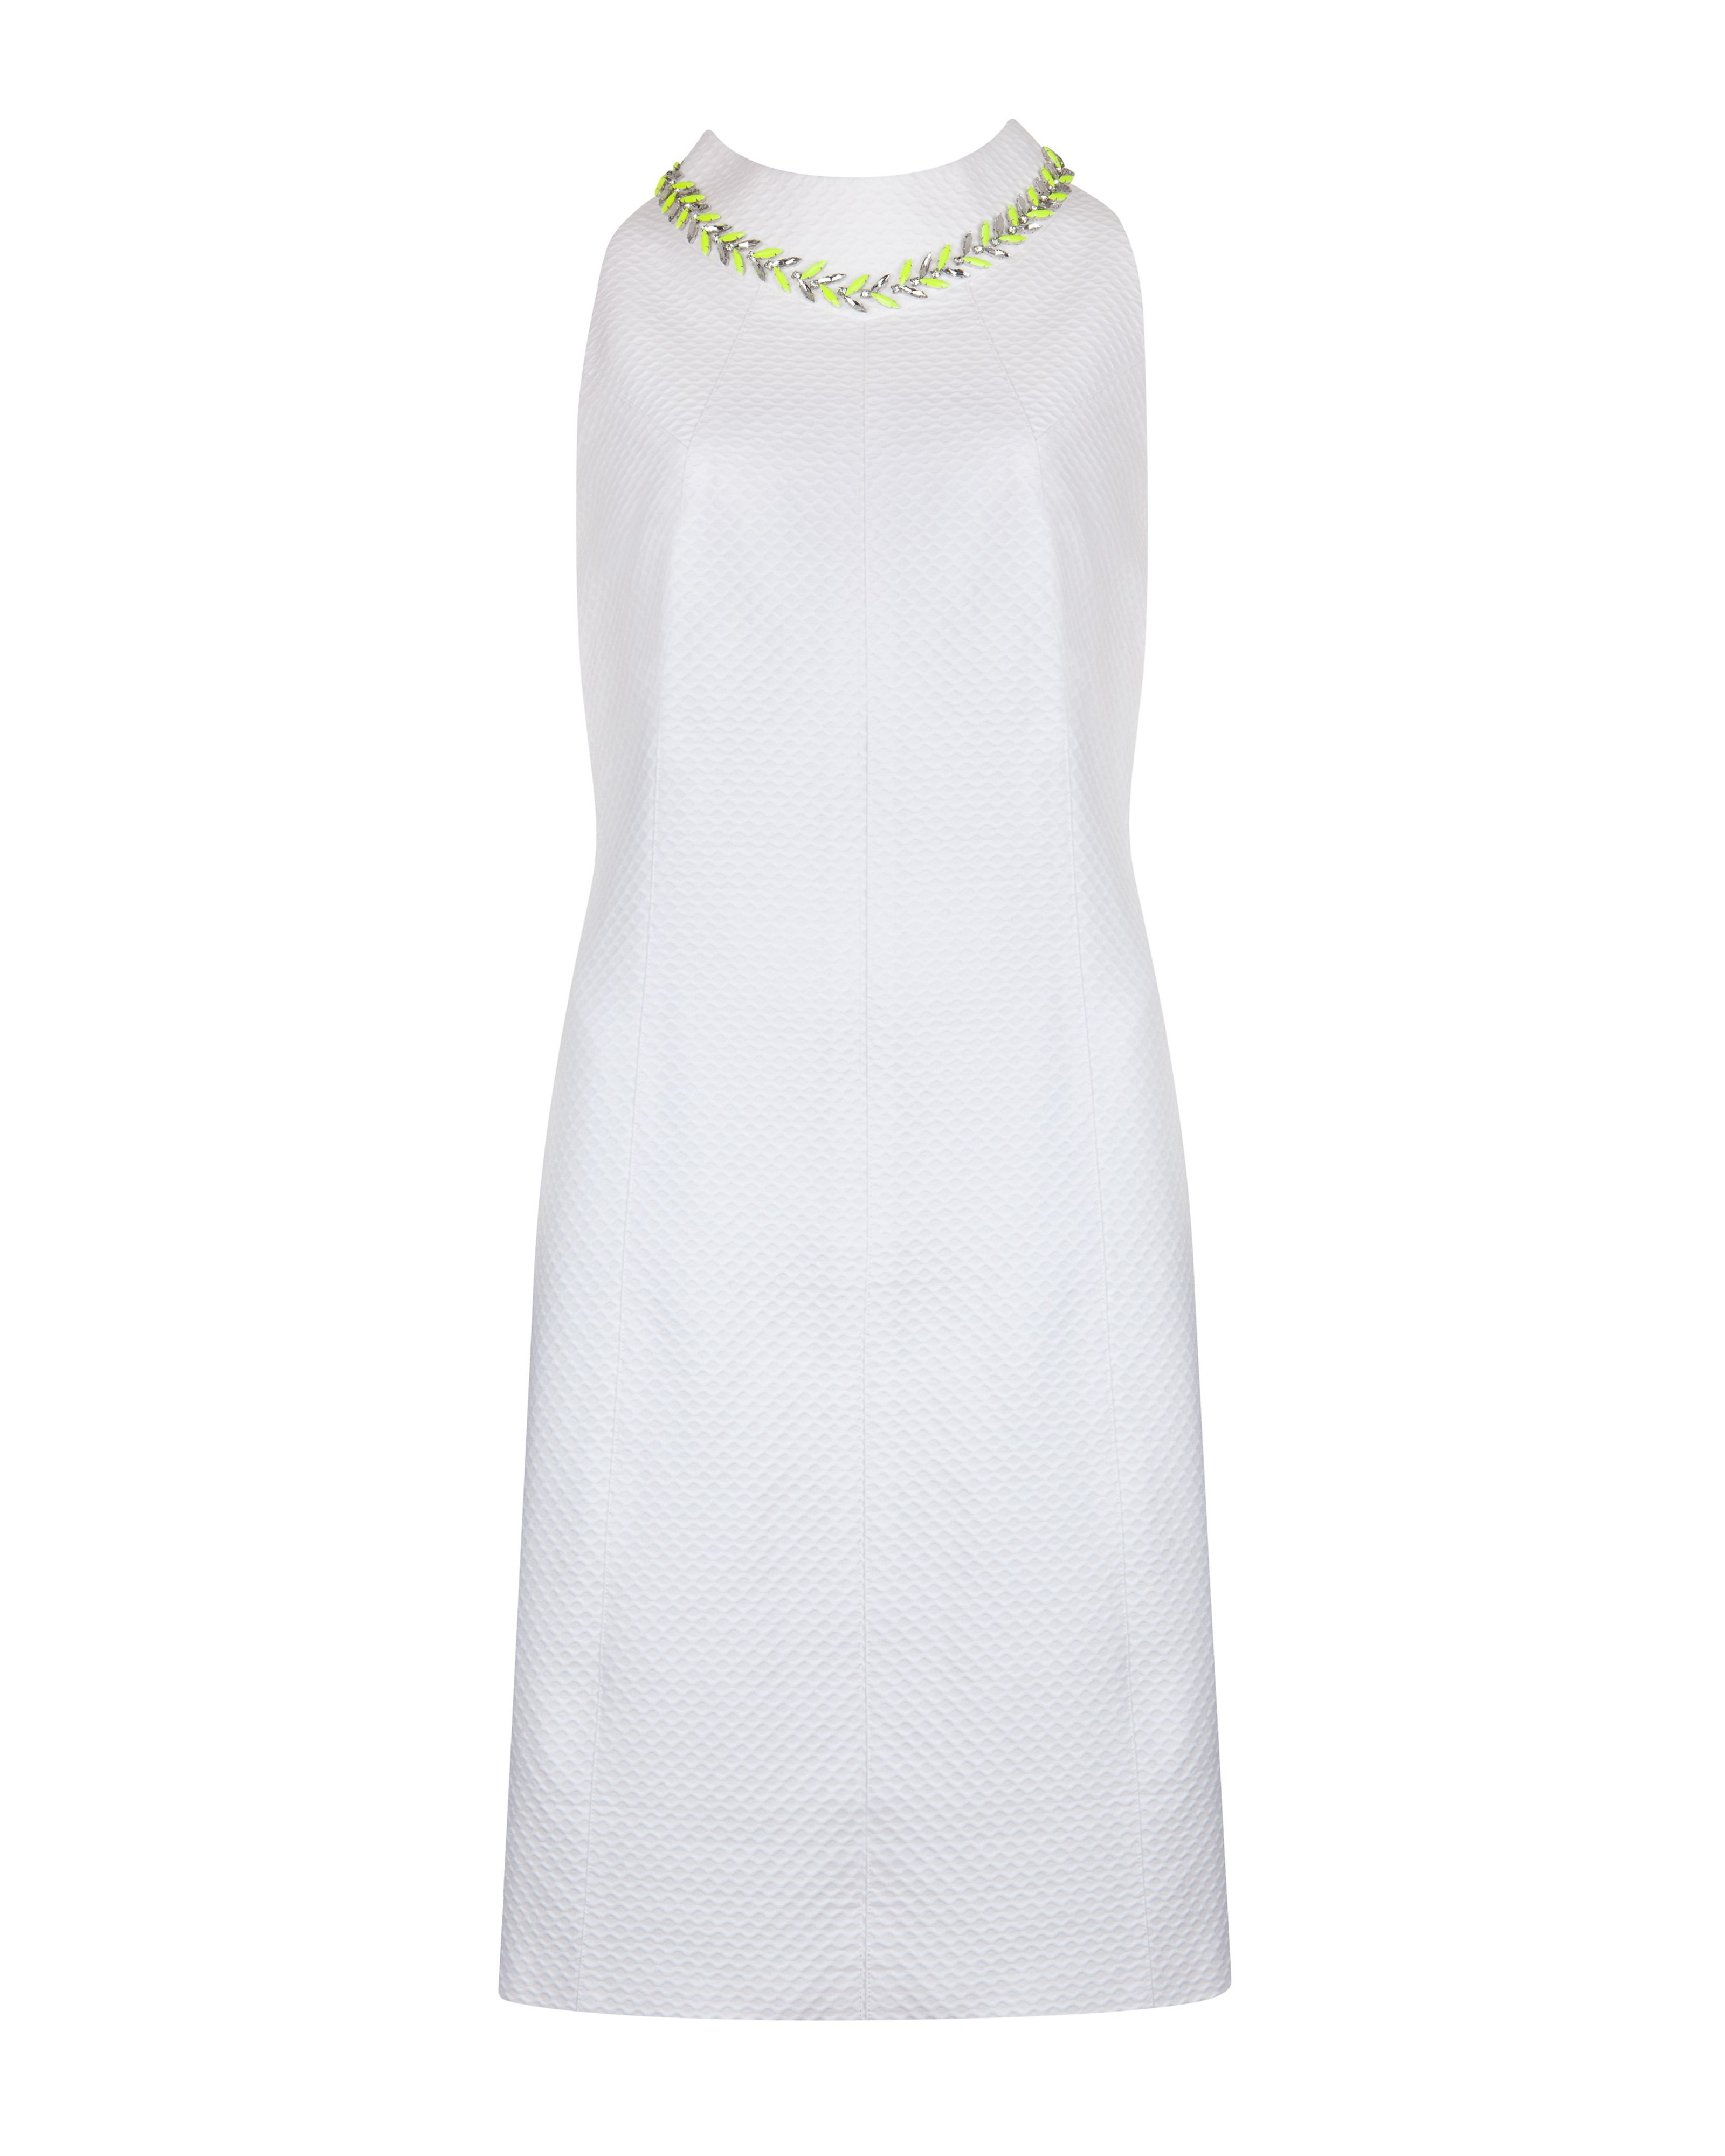 Sabelle embroidered shift dress